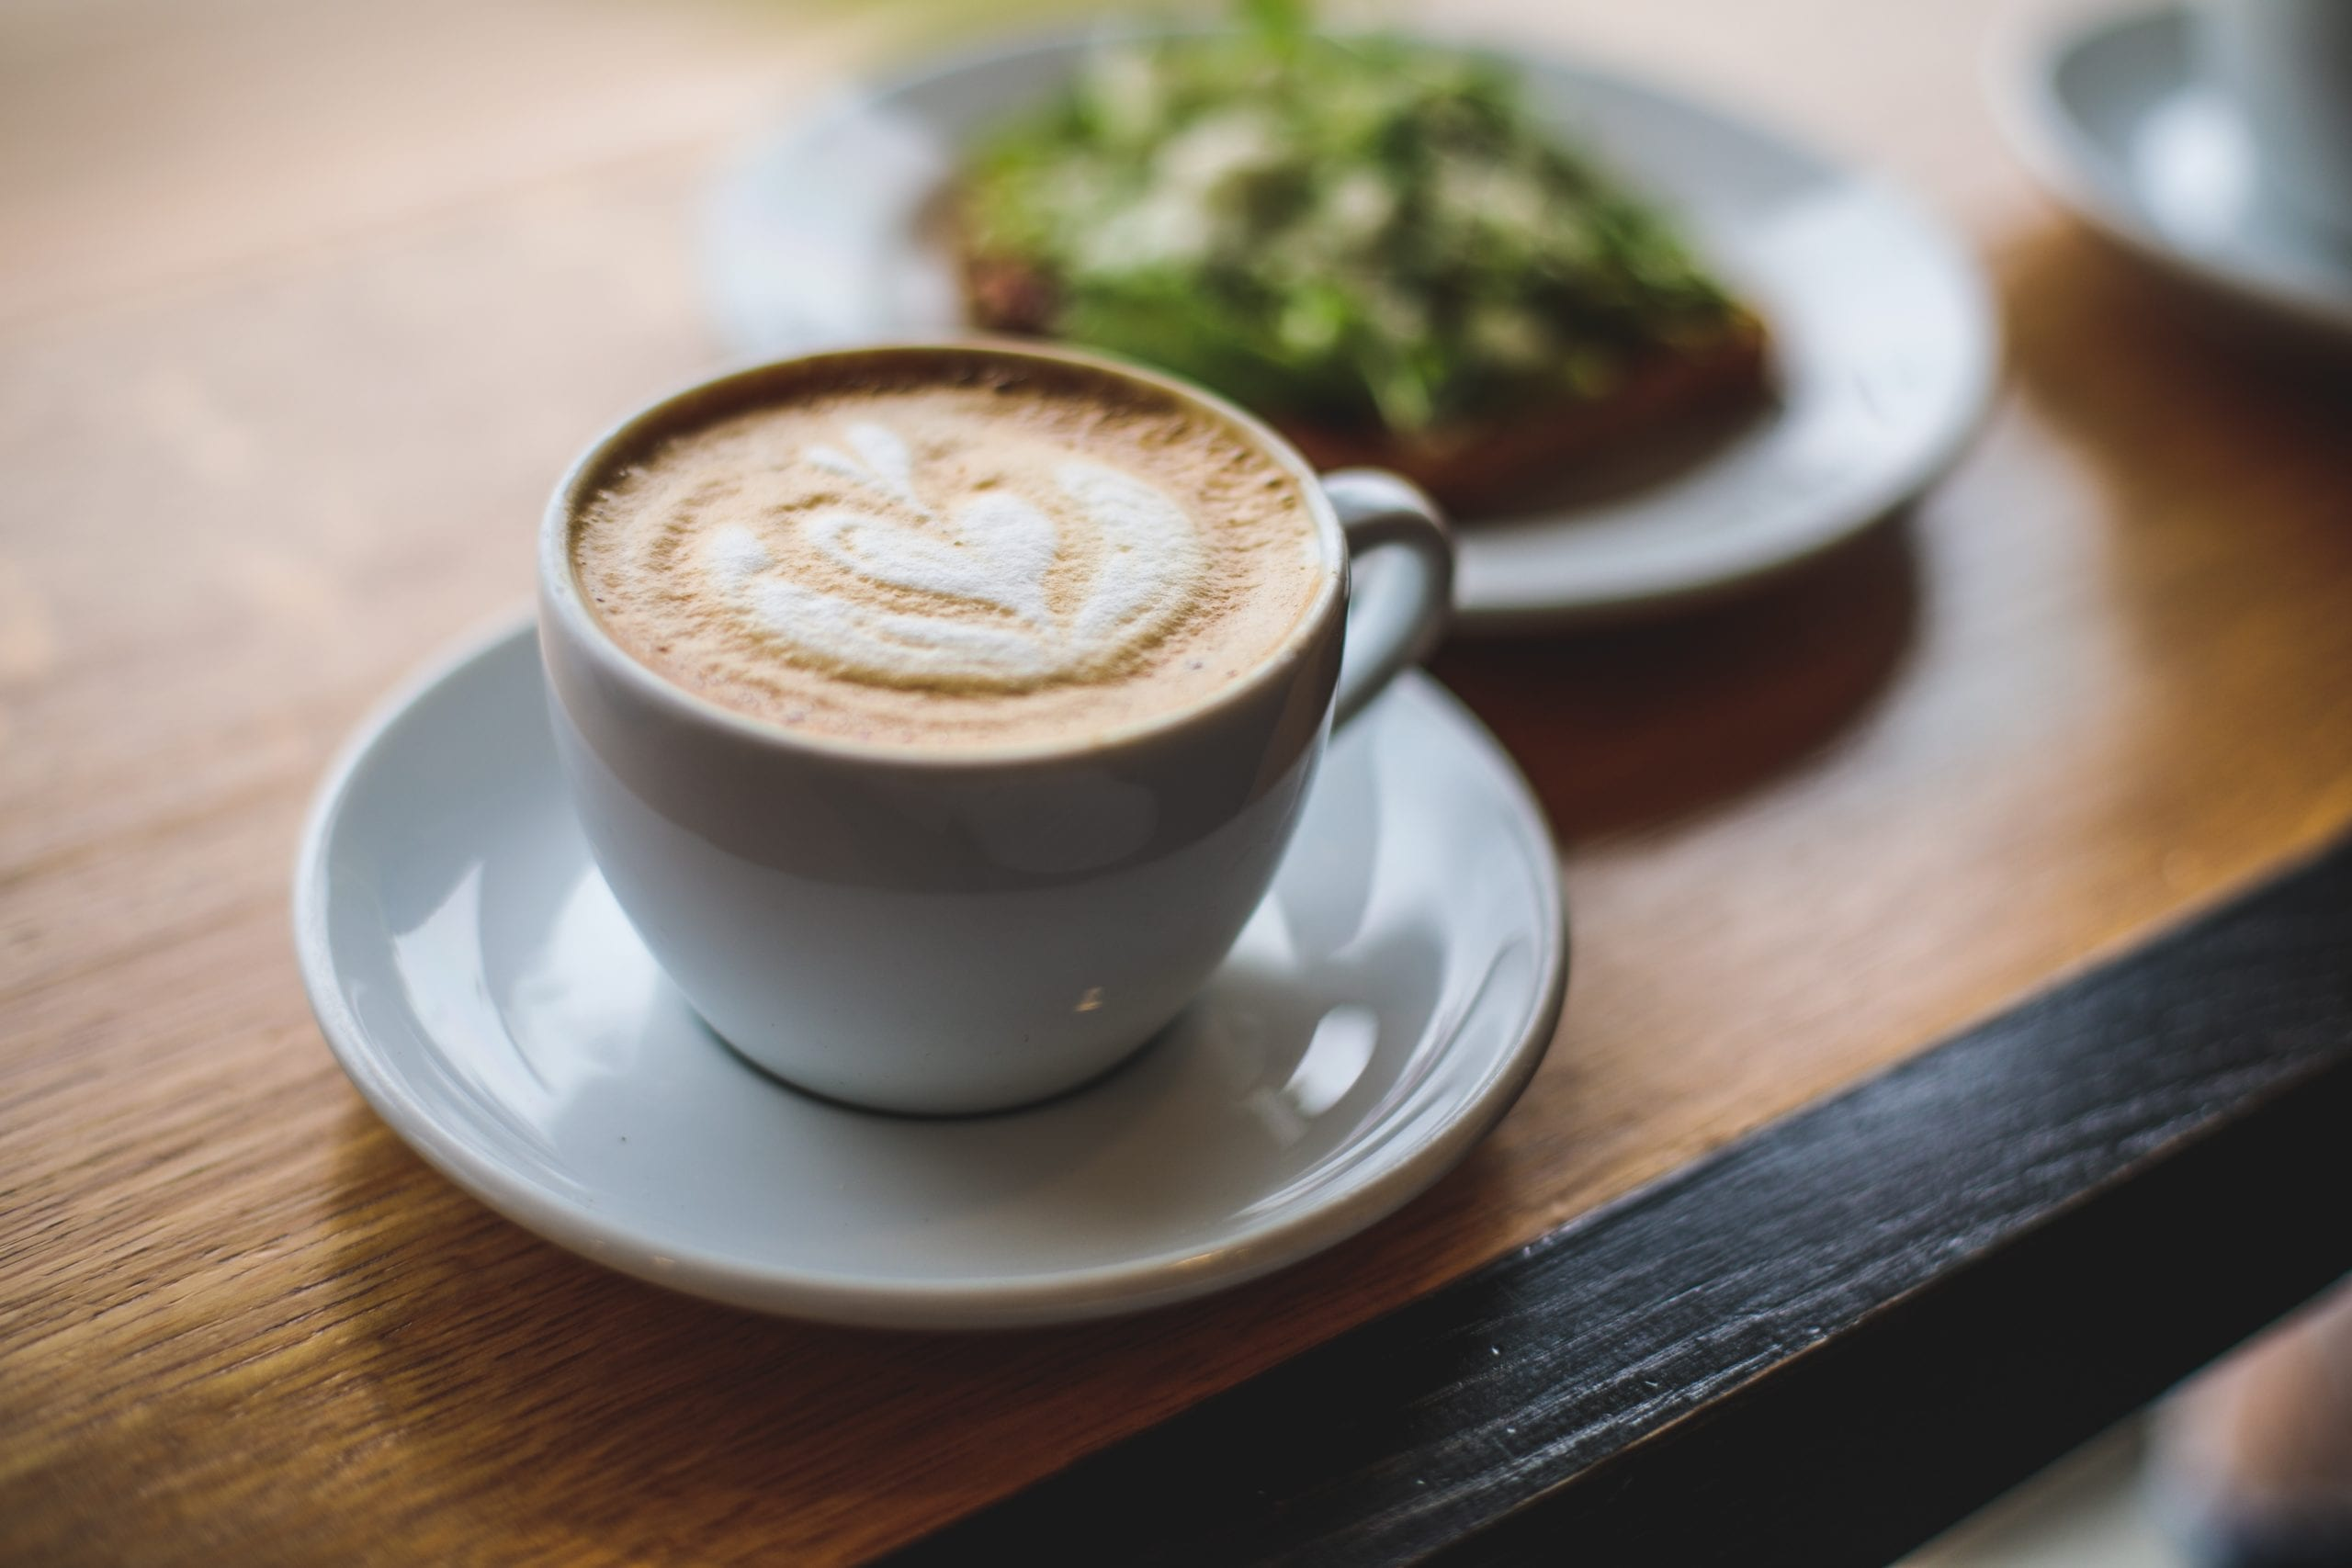 Cappuccino siting on a plate on a table